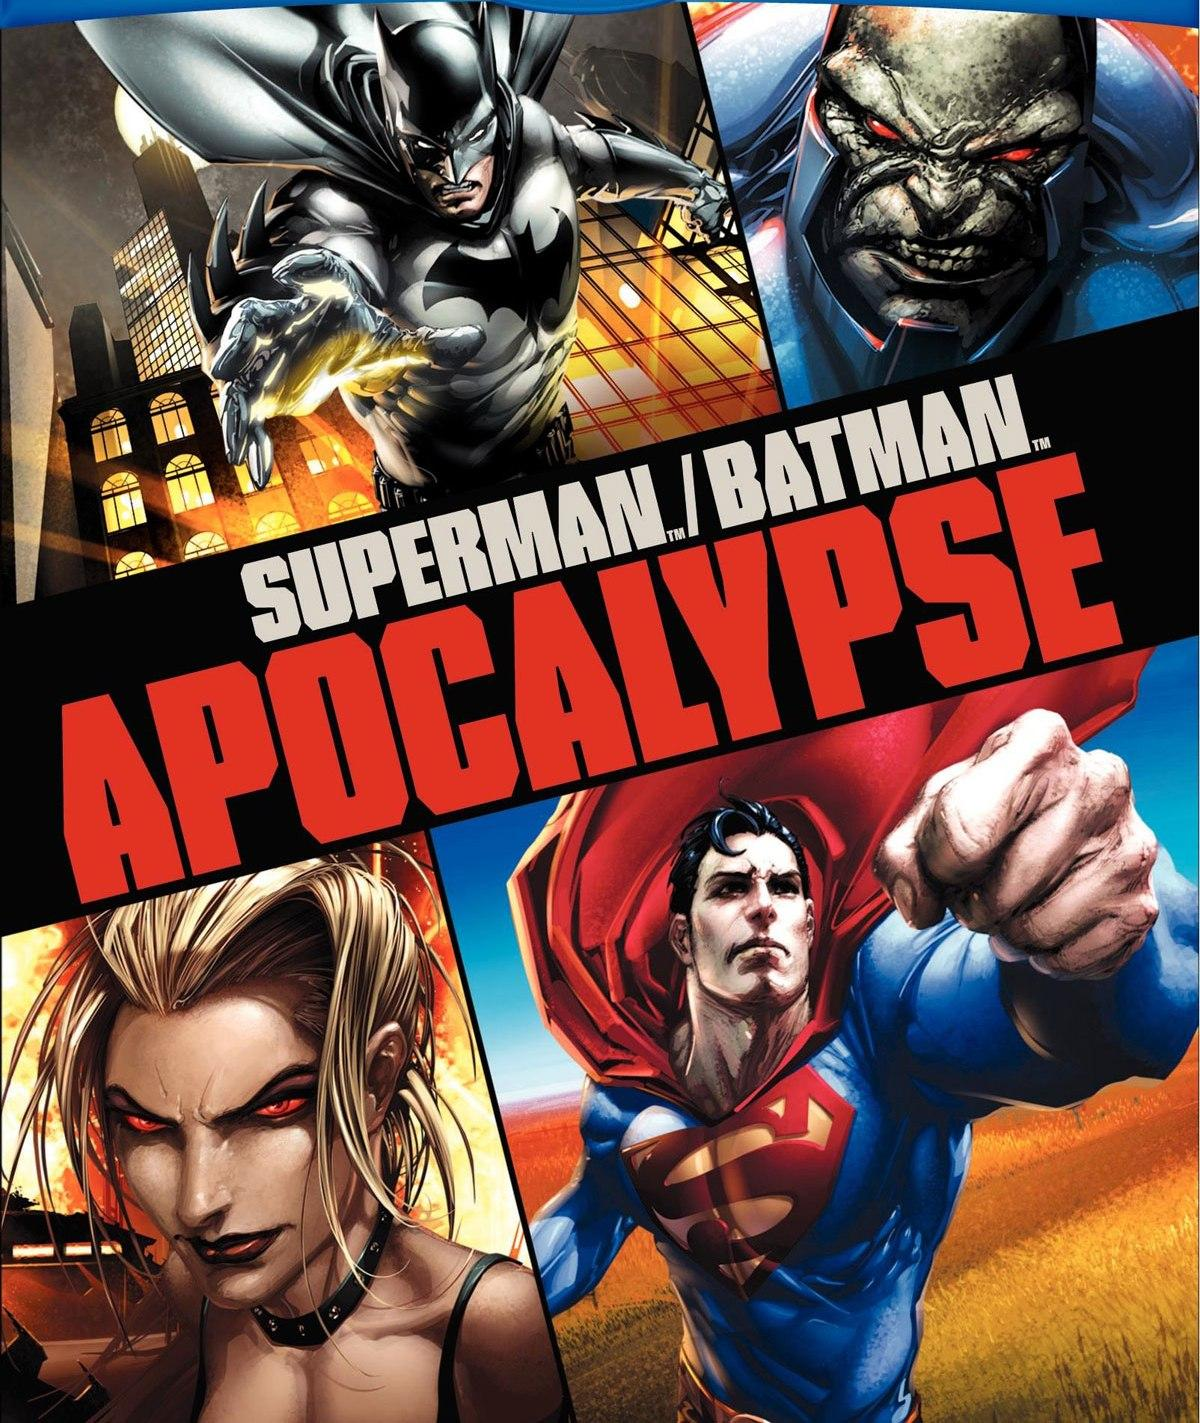 [MULTI] Superman/Batman : Apocalypse (2010) [TRUEFRENCH] [DVDRiP]